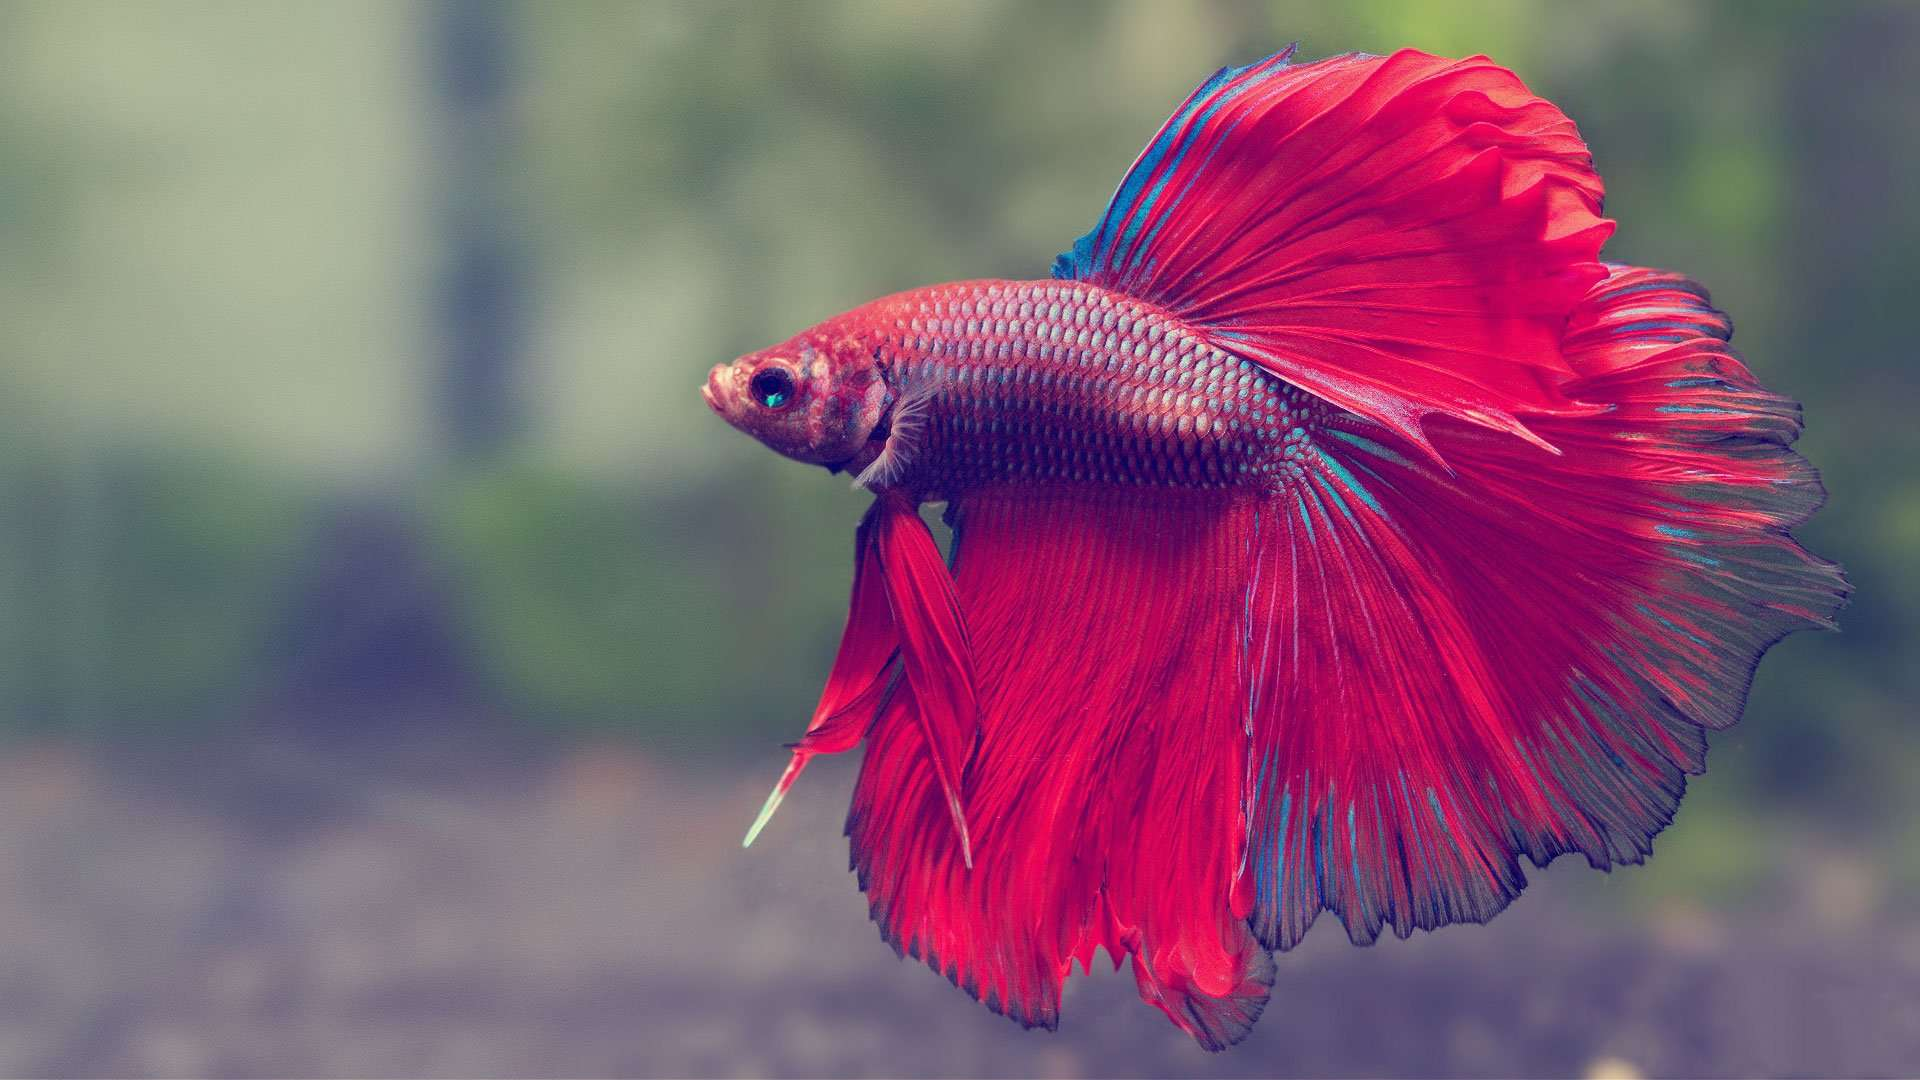 How to take care of a betta fish best betta fish tank for How to care for betta fish